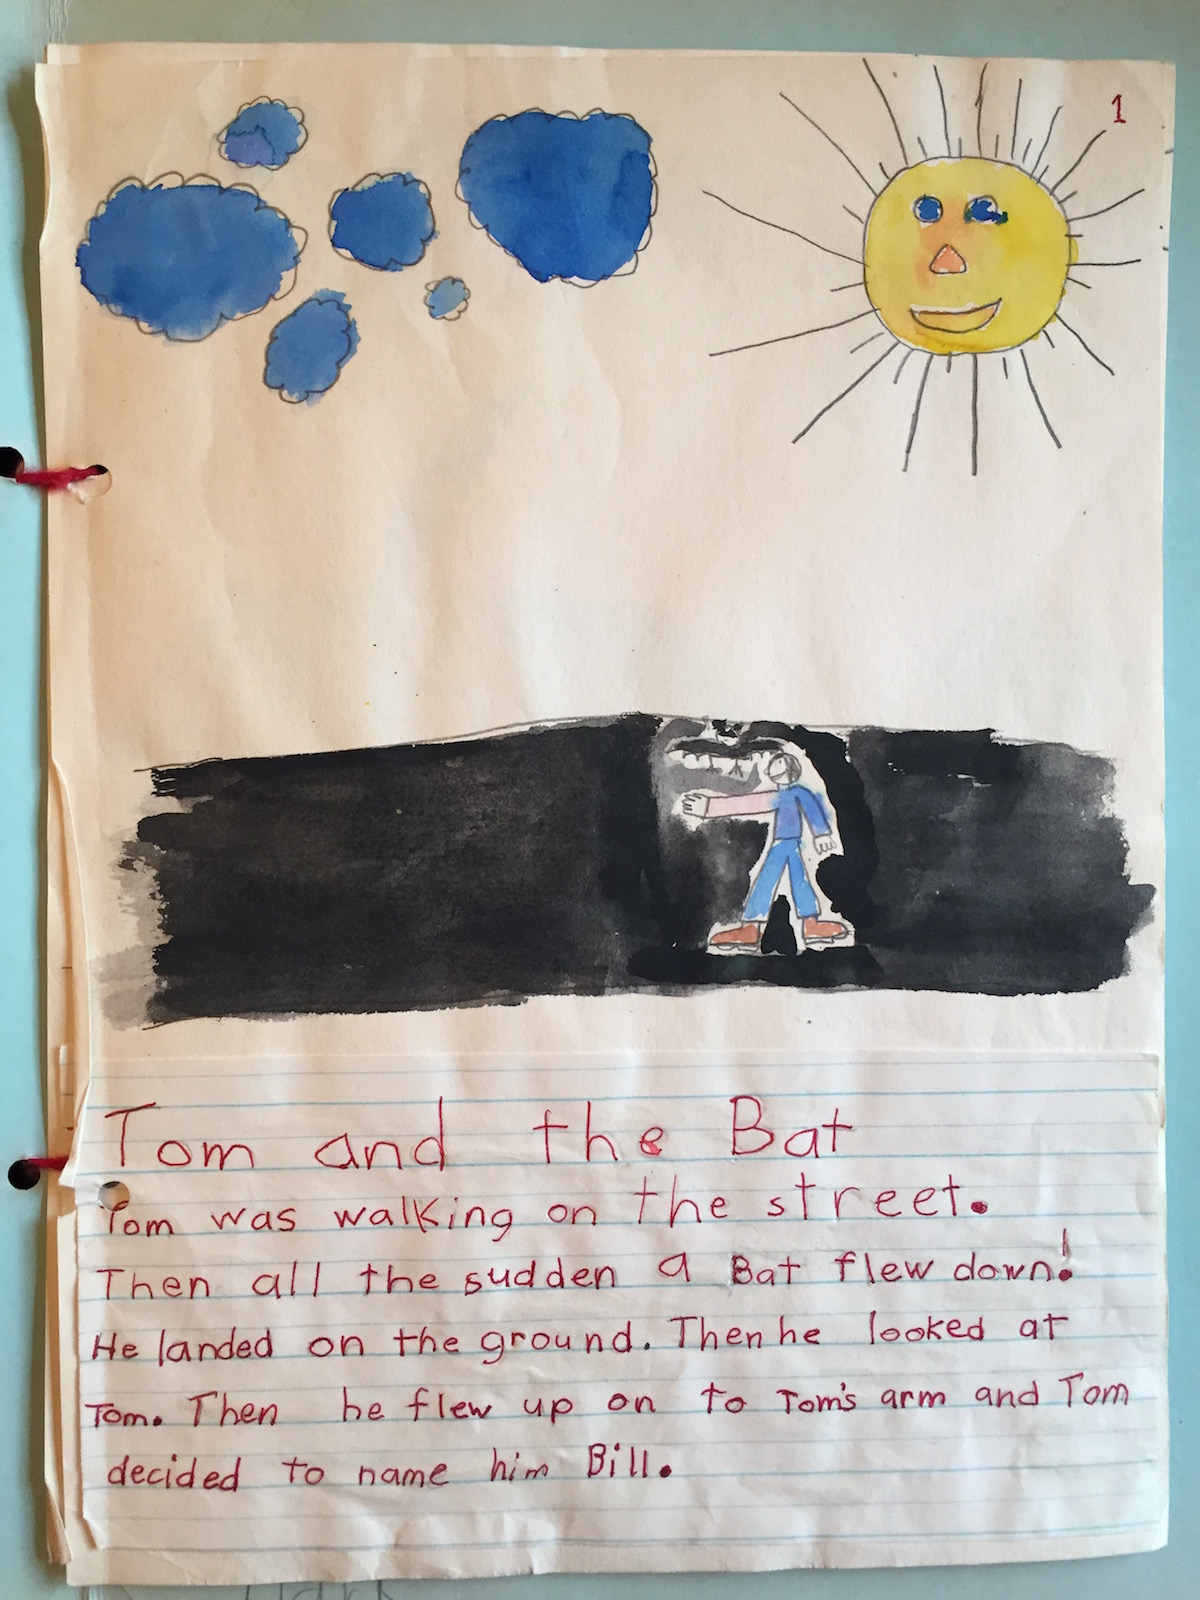 Tom and the Bat 2